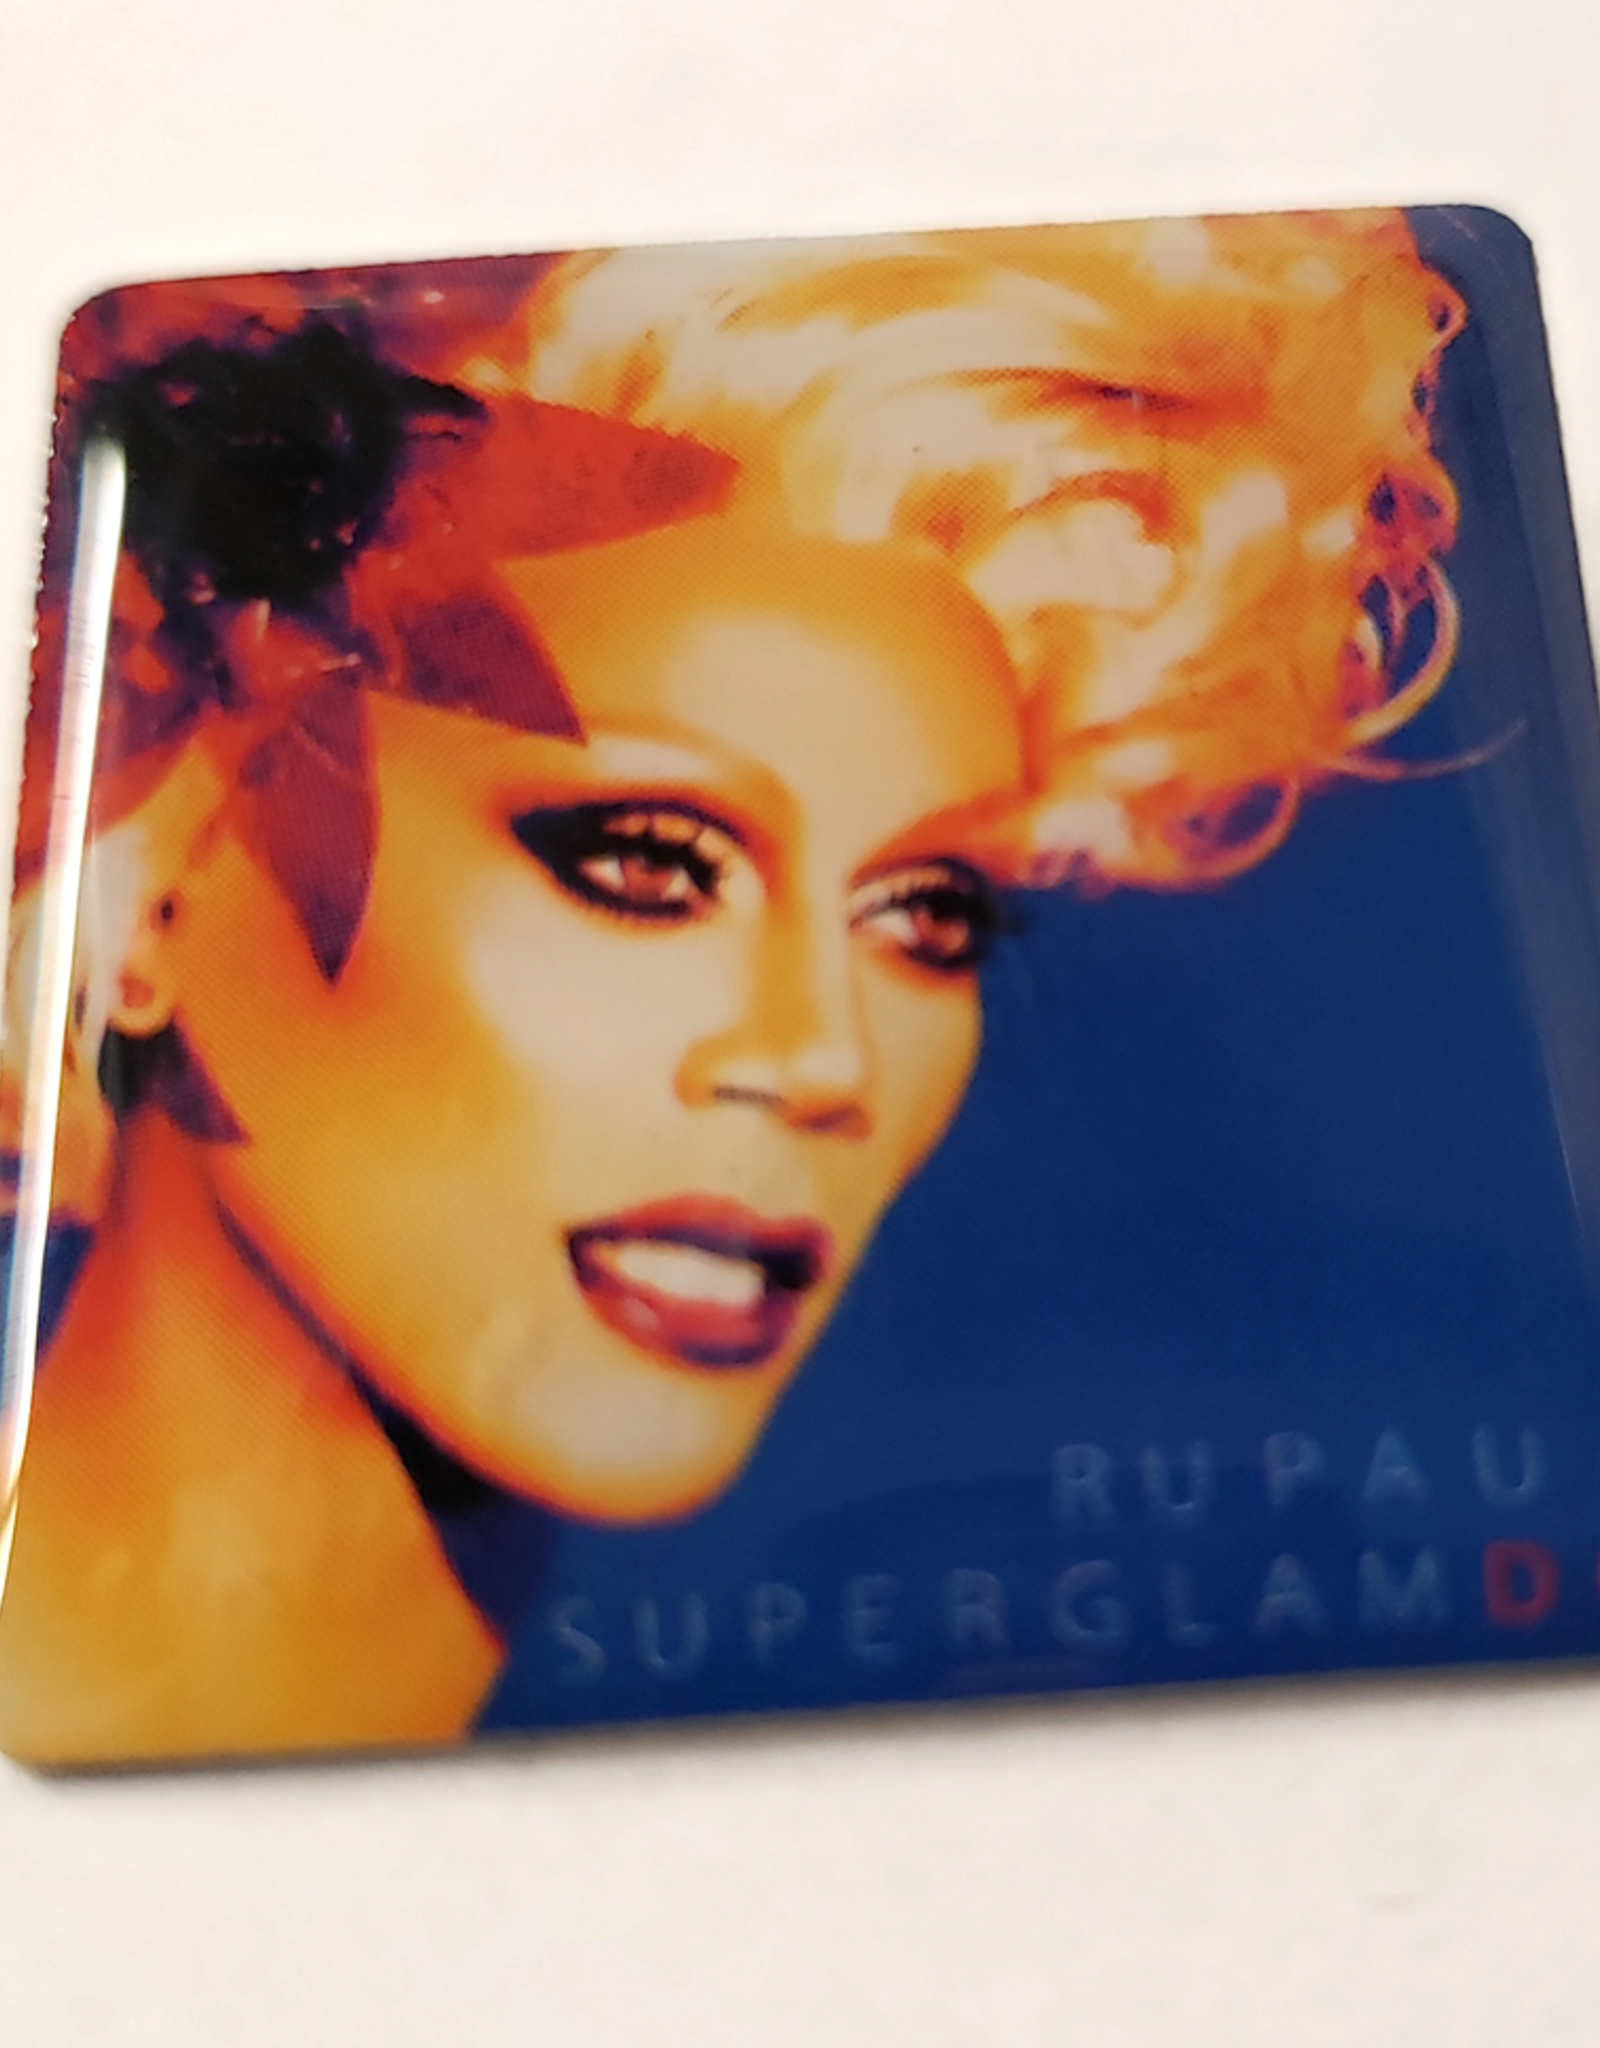 RuPaul CD Cover Pin- Superglam